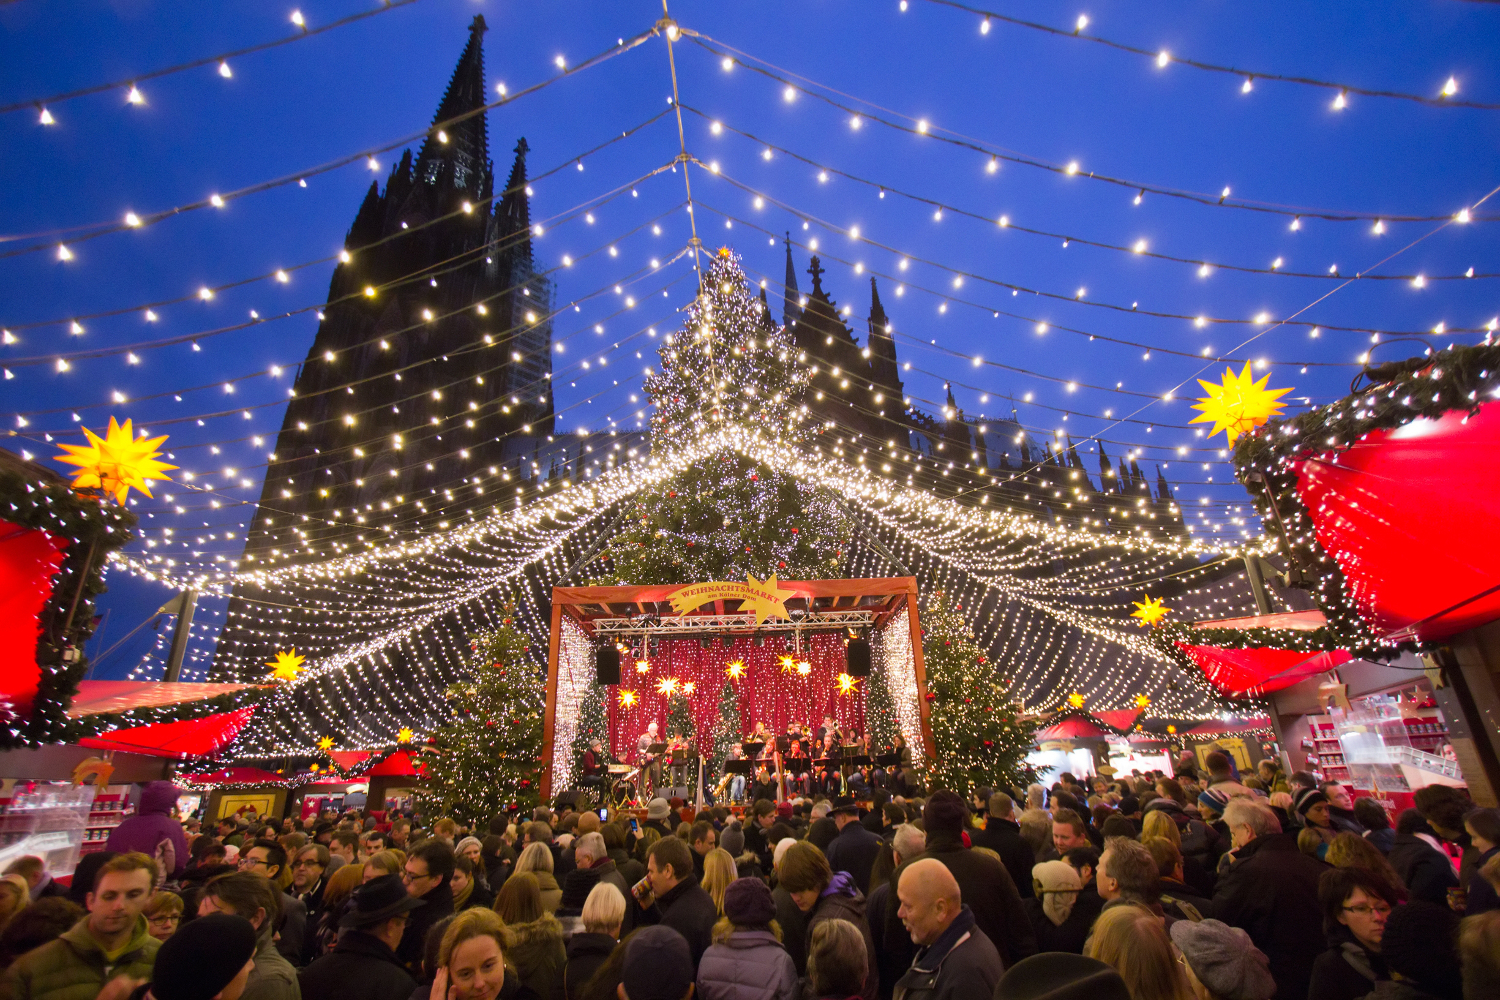 Cologne, Germany - Christmas Market